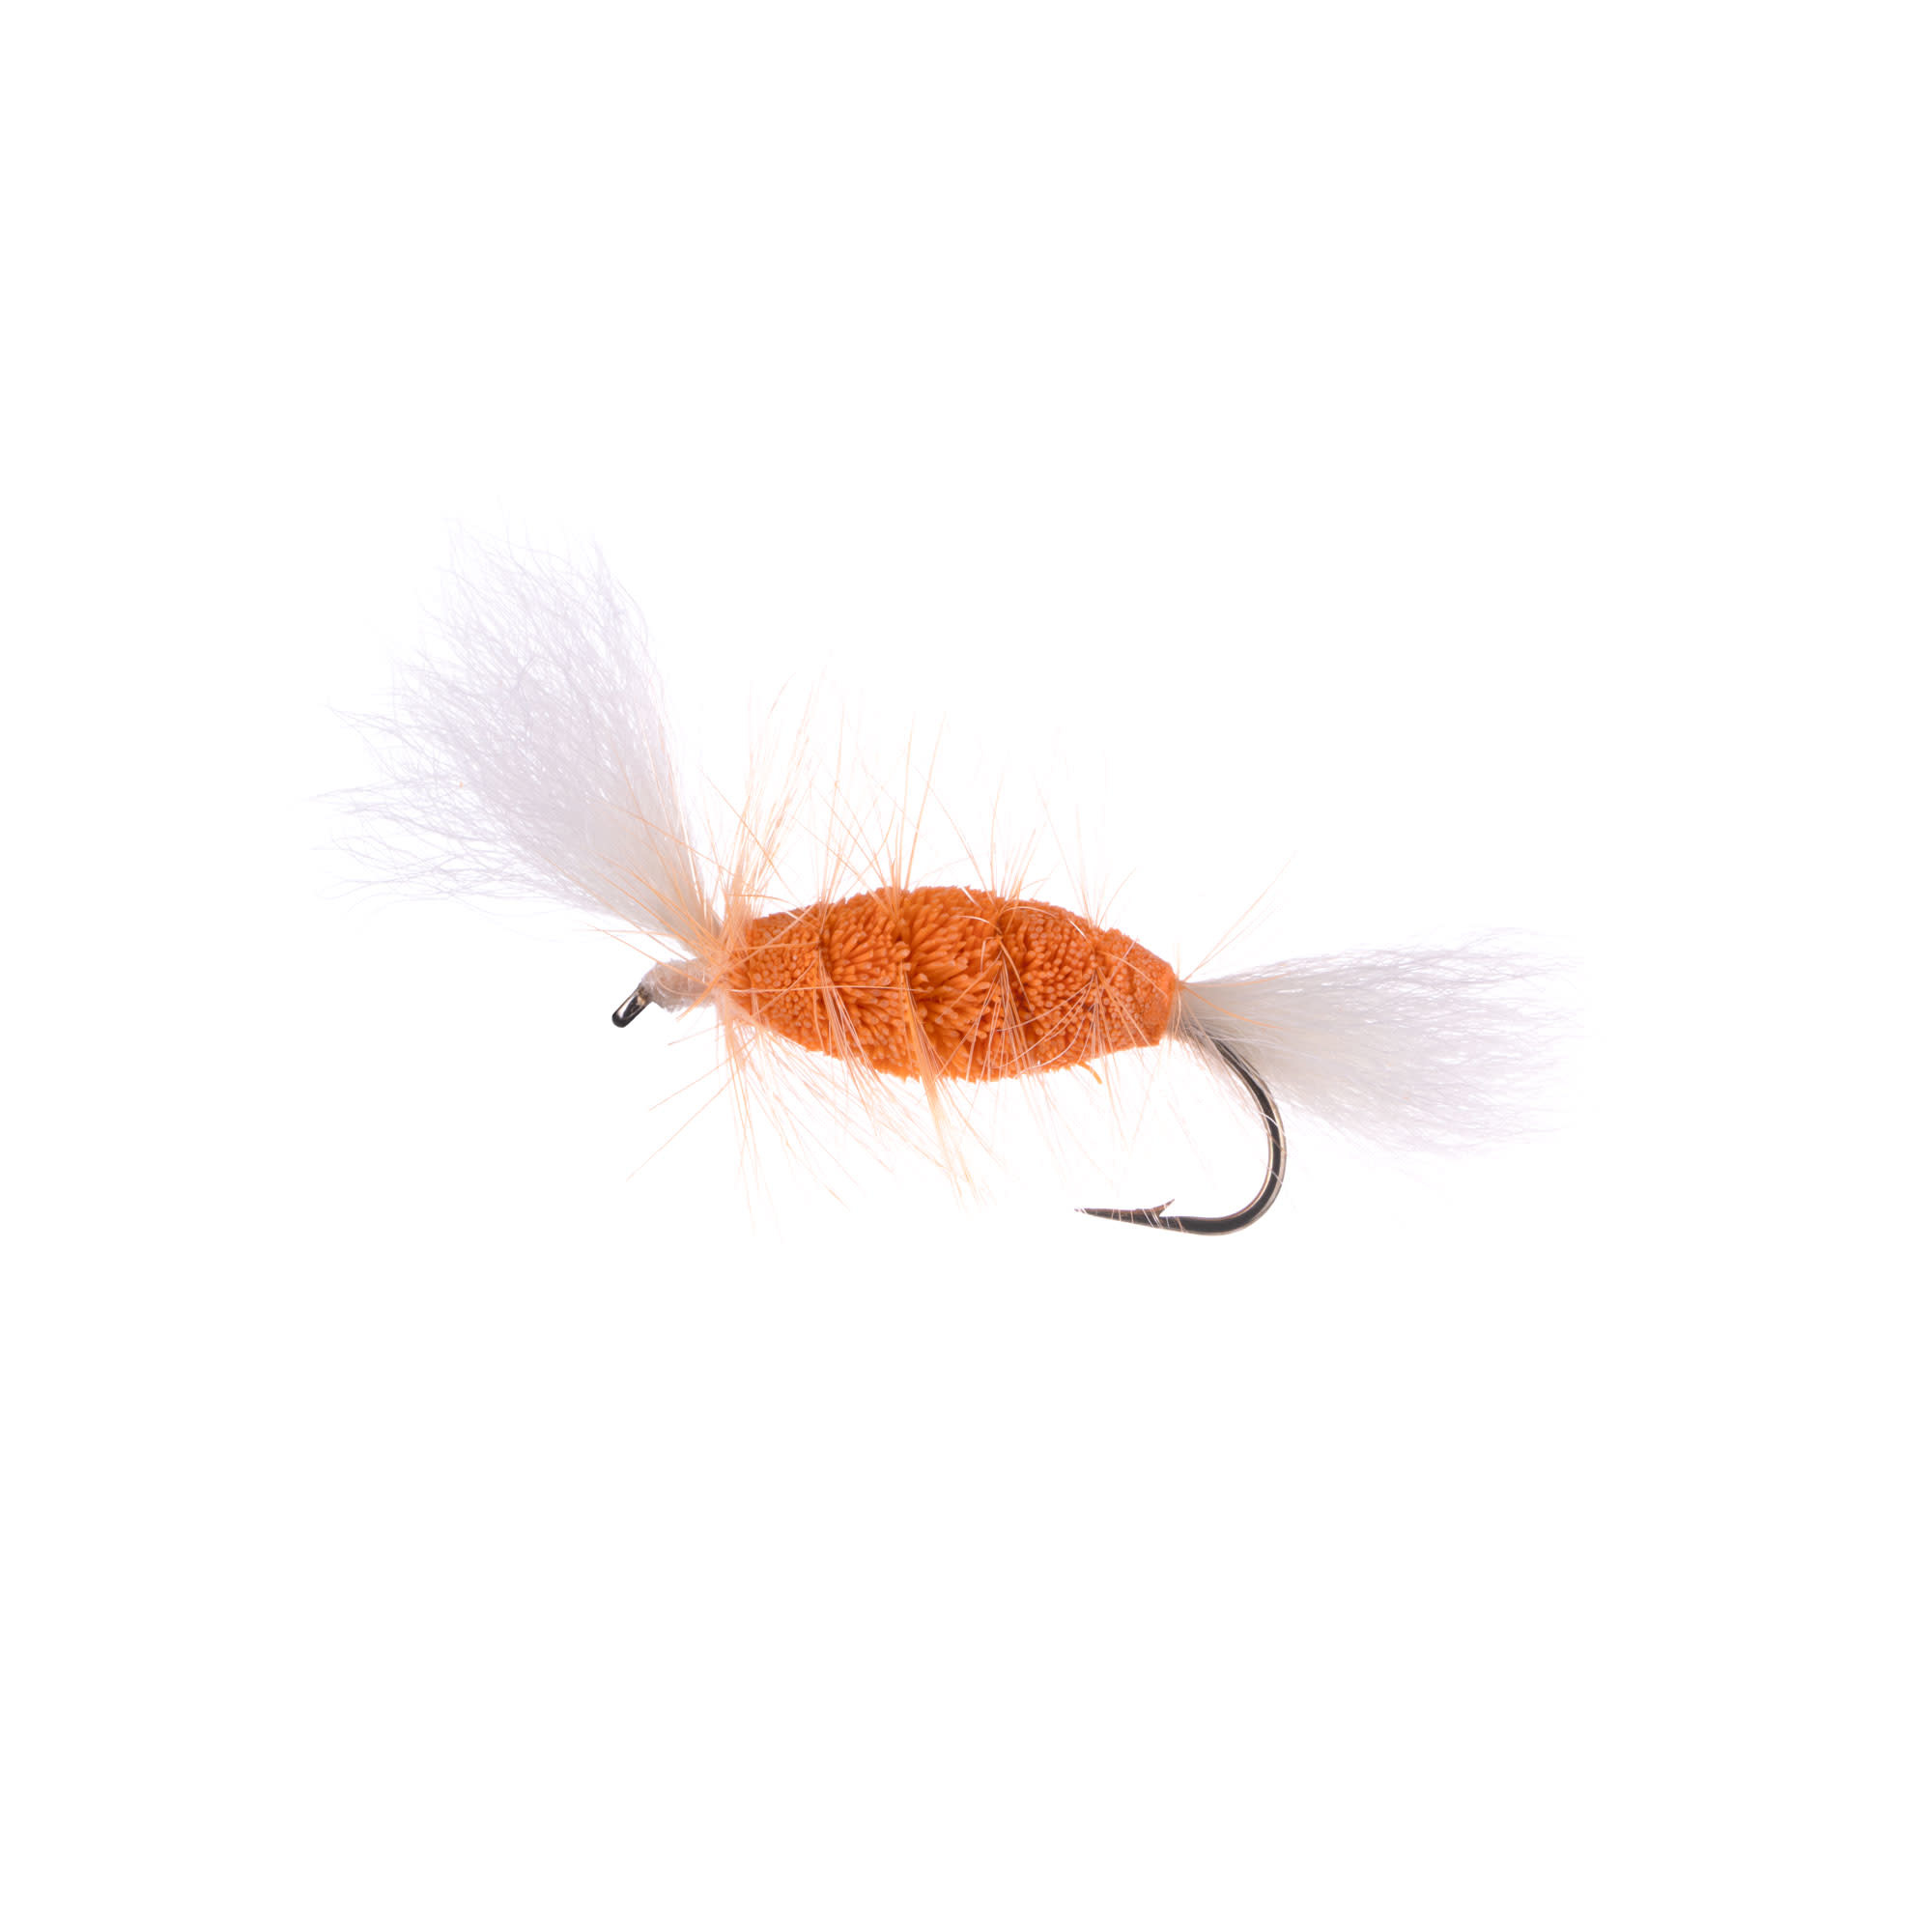 SHRIMP-White Tail-Shrimp Hackle (Cigar Bomber) #6